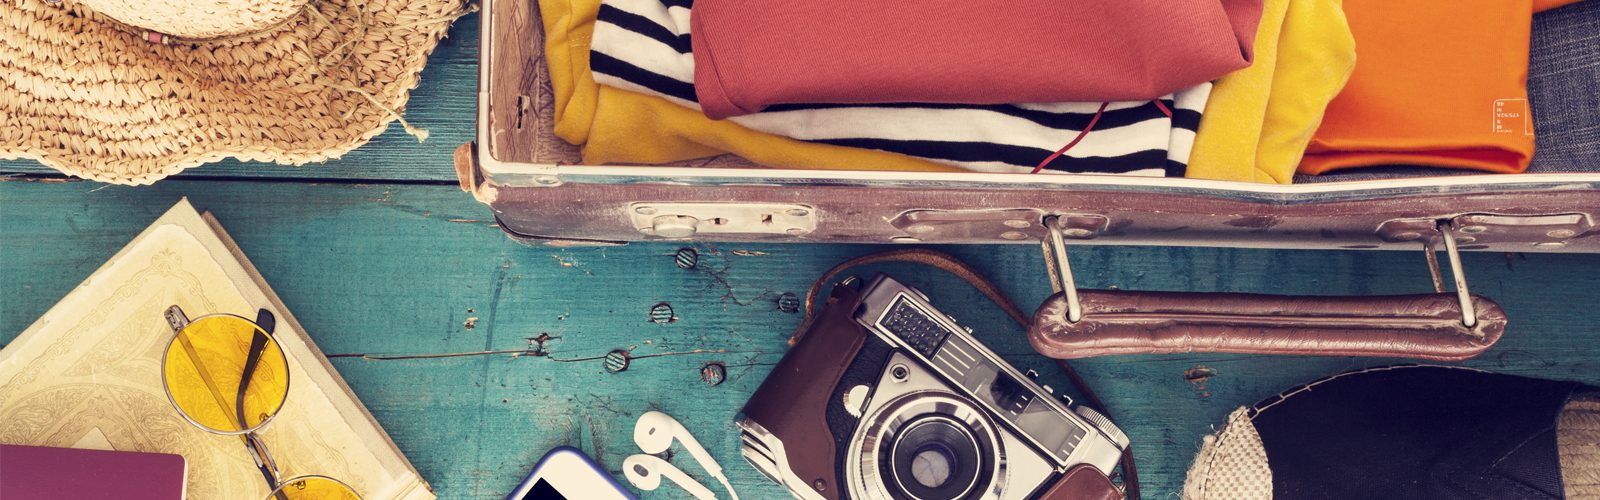 How To Pack Like A Minimalist Luxury Tailor Made Holiday Packages Header